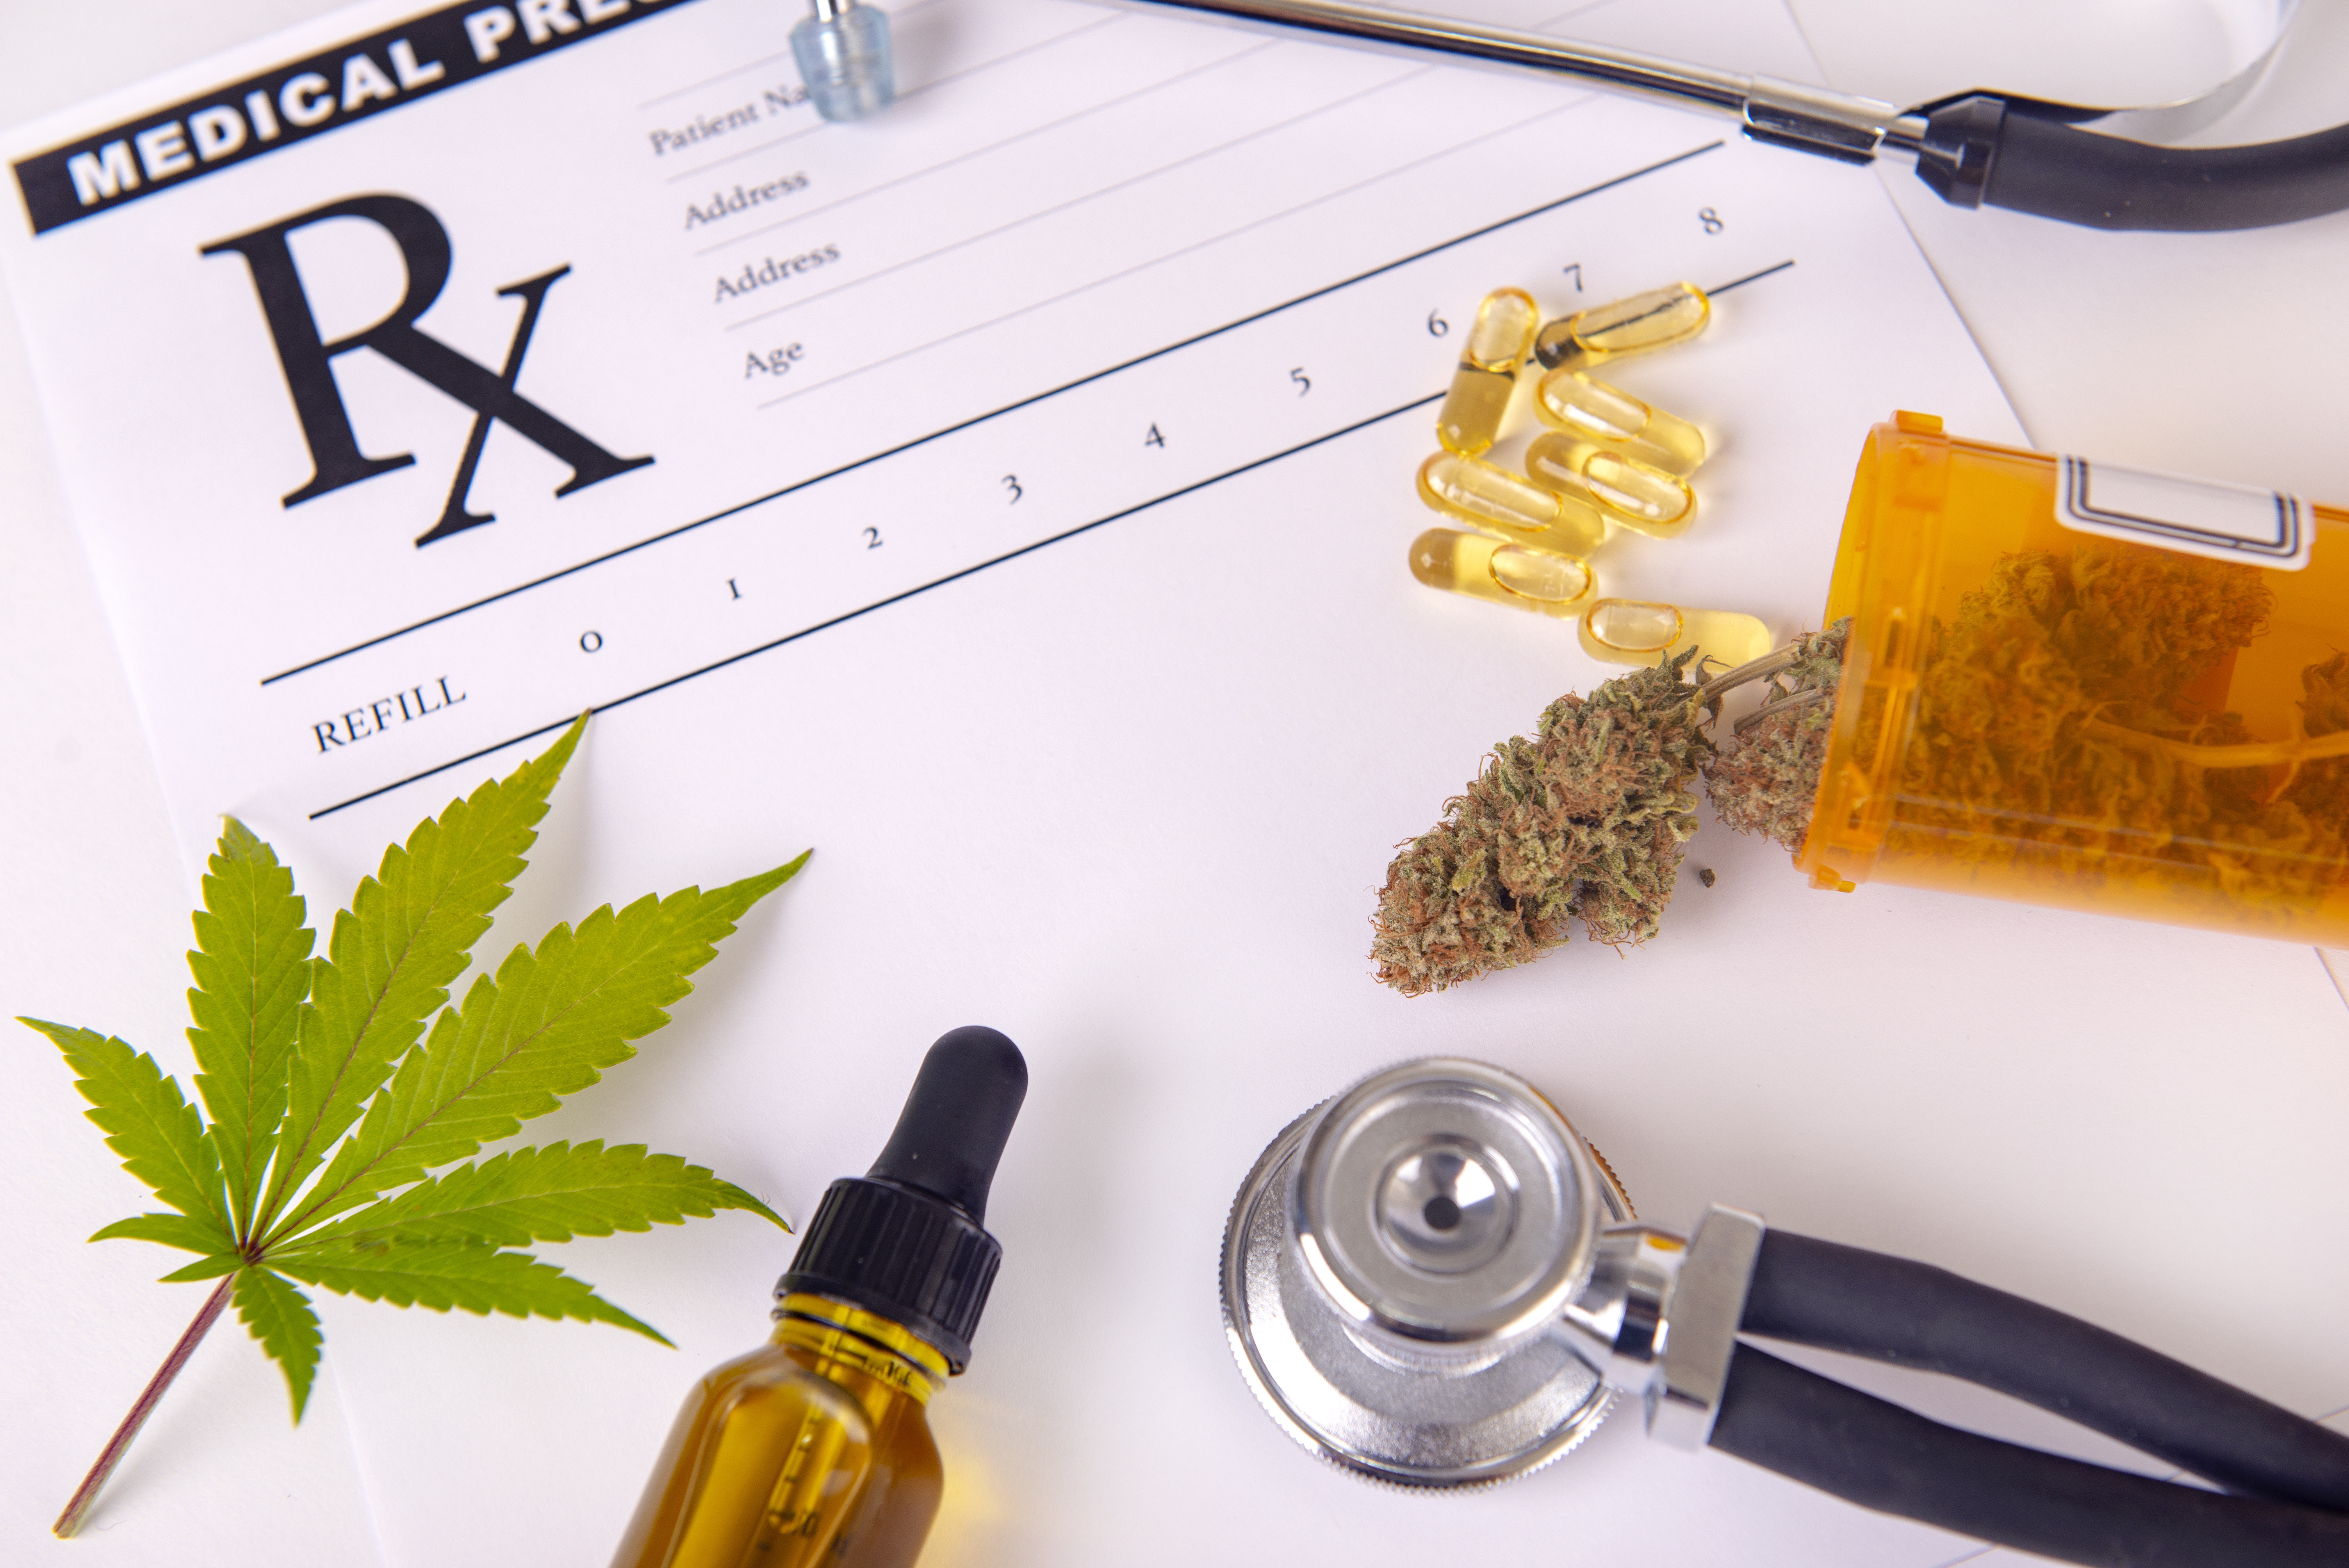 Medical Cannabis Card Certification